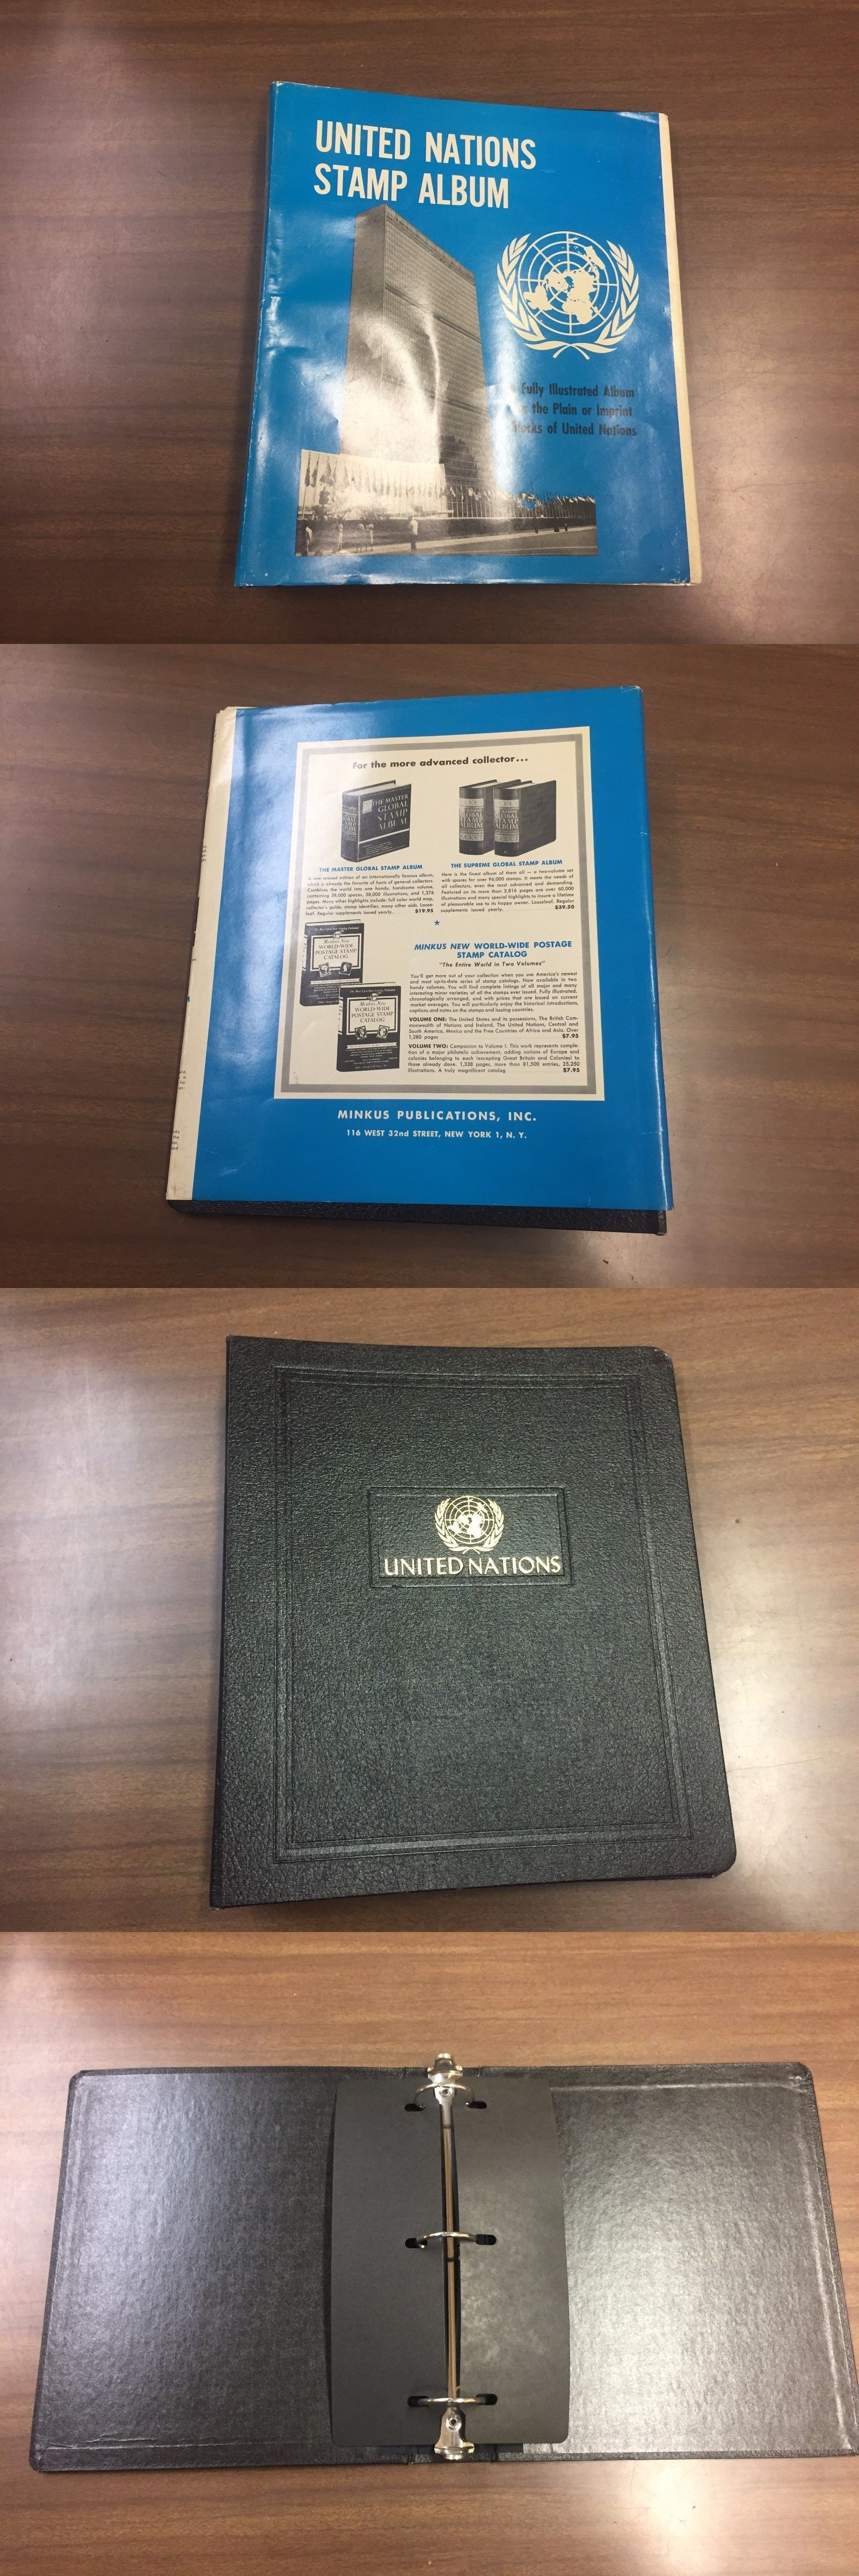 Albums 162057: Minkus Binder For United Nations Stamp Album